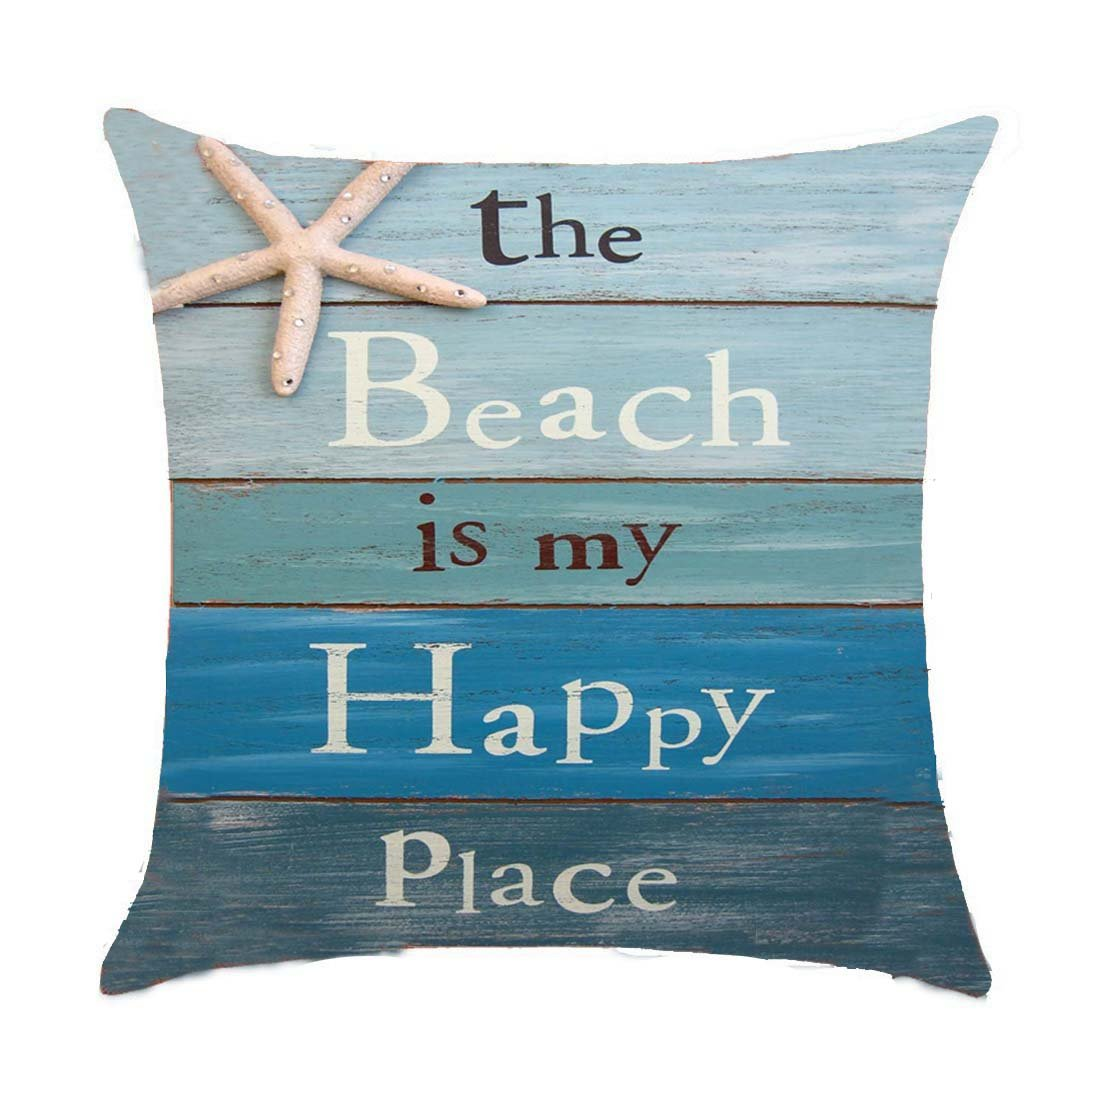 Refreshing summer The beach is my happy place Cotton Linen Throw pillow cover Cushion Case Holiday Decorative 18X18 inch GAWEKIQE 2